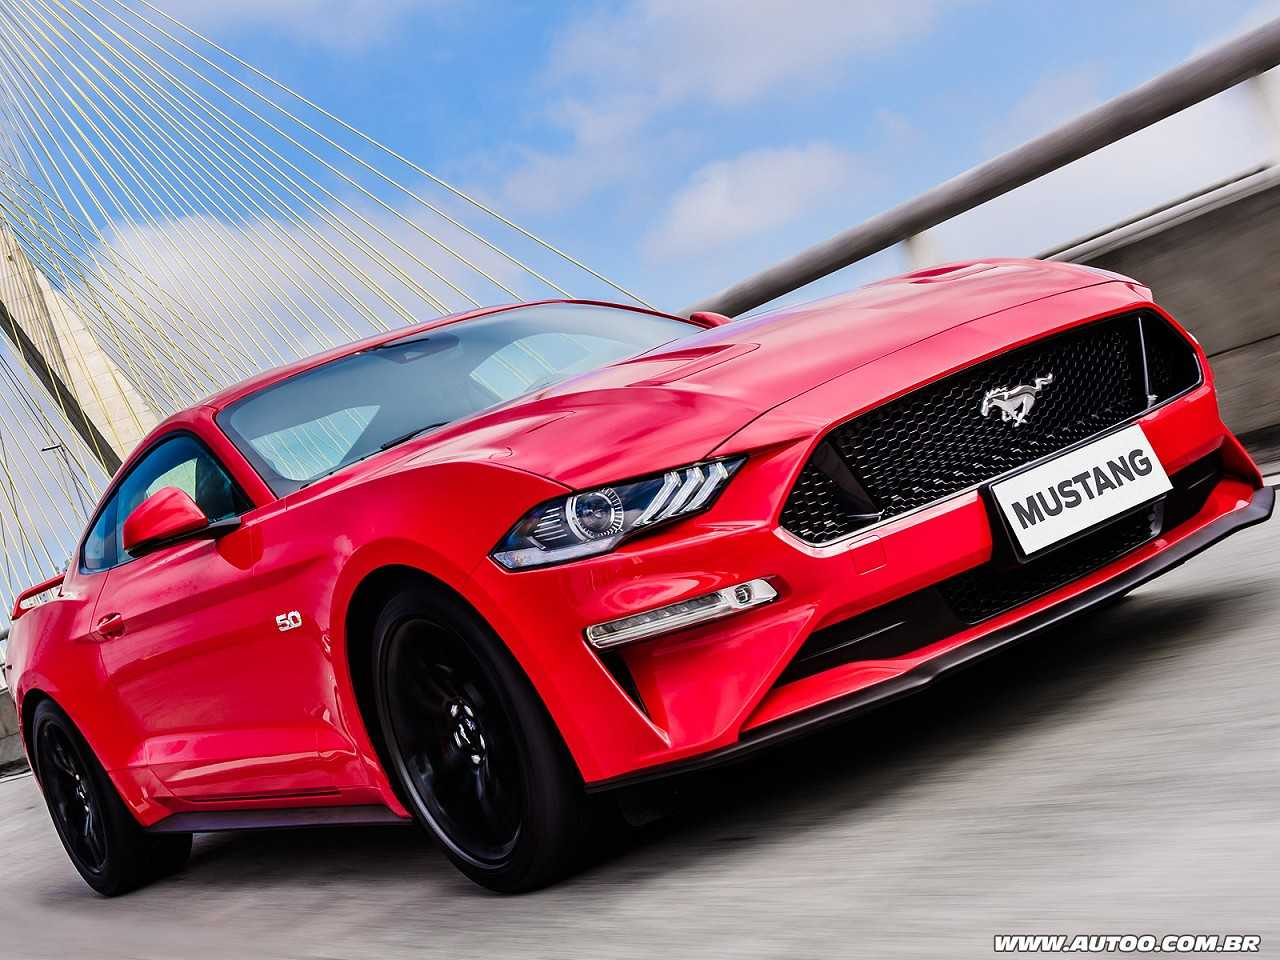 FordMustang 2018 - ângulo frontal